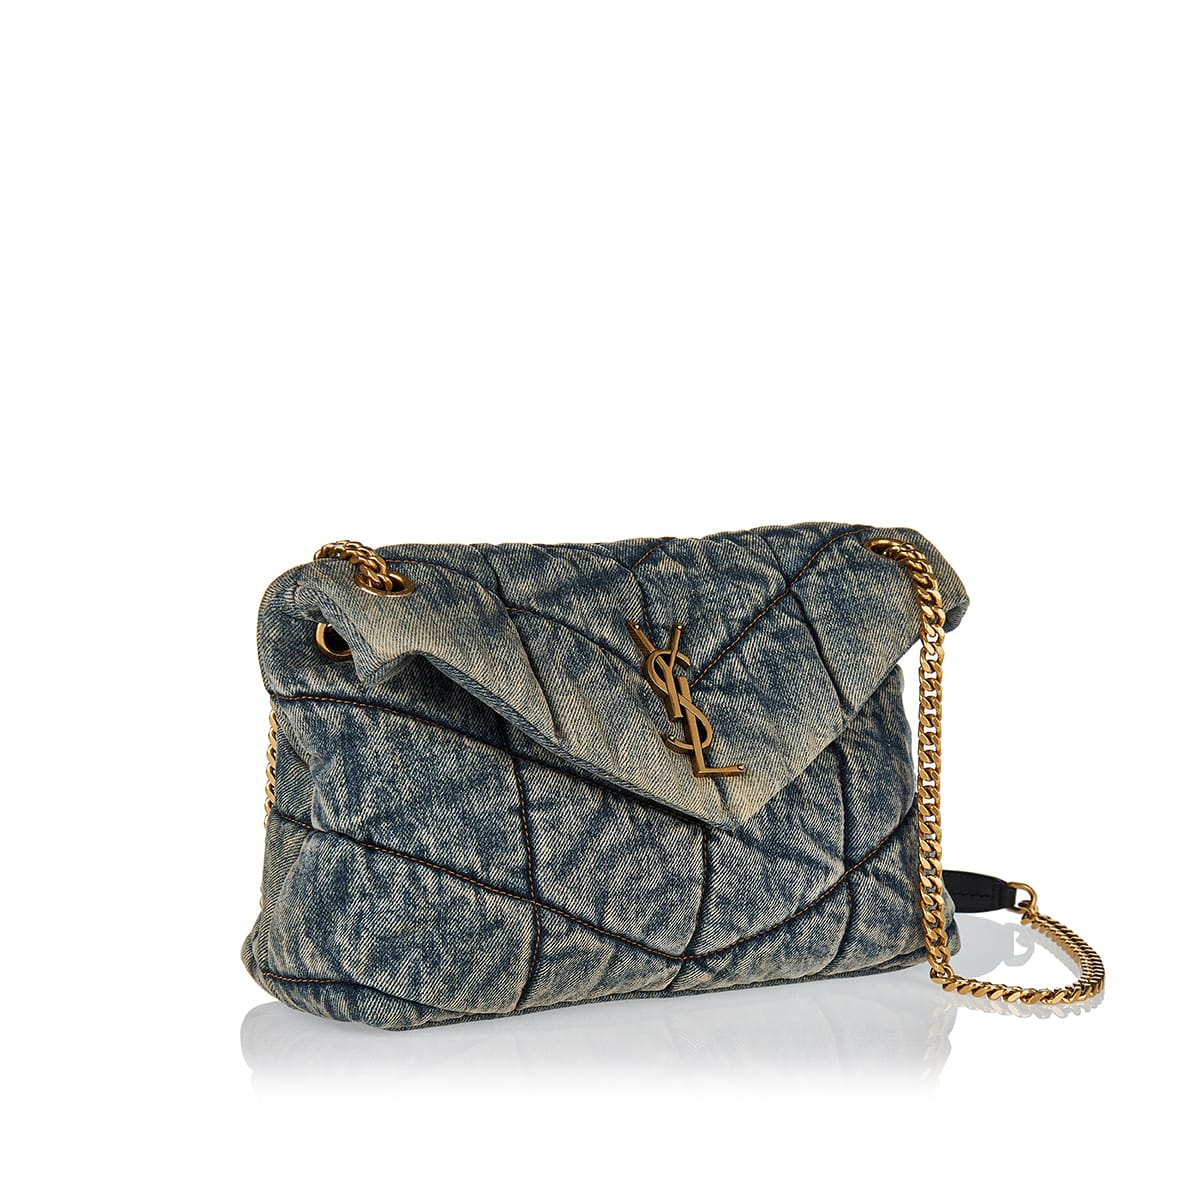 Loulou small puffer denim bag